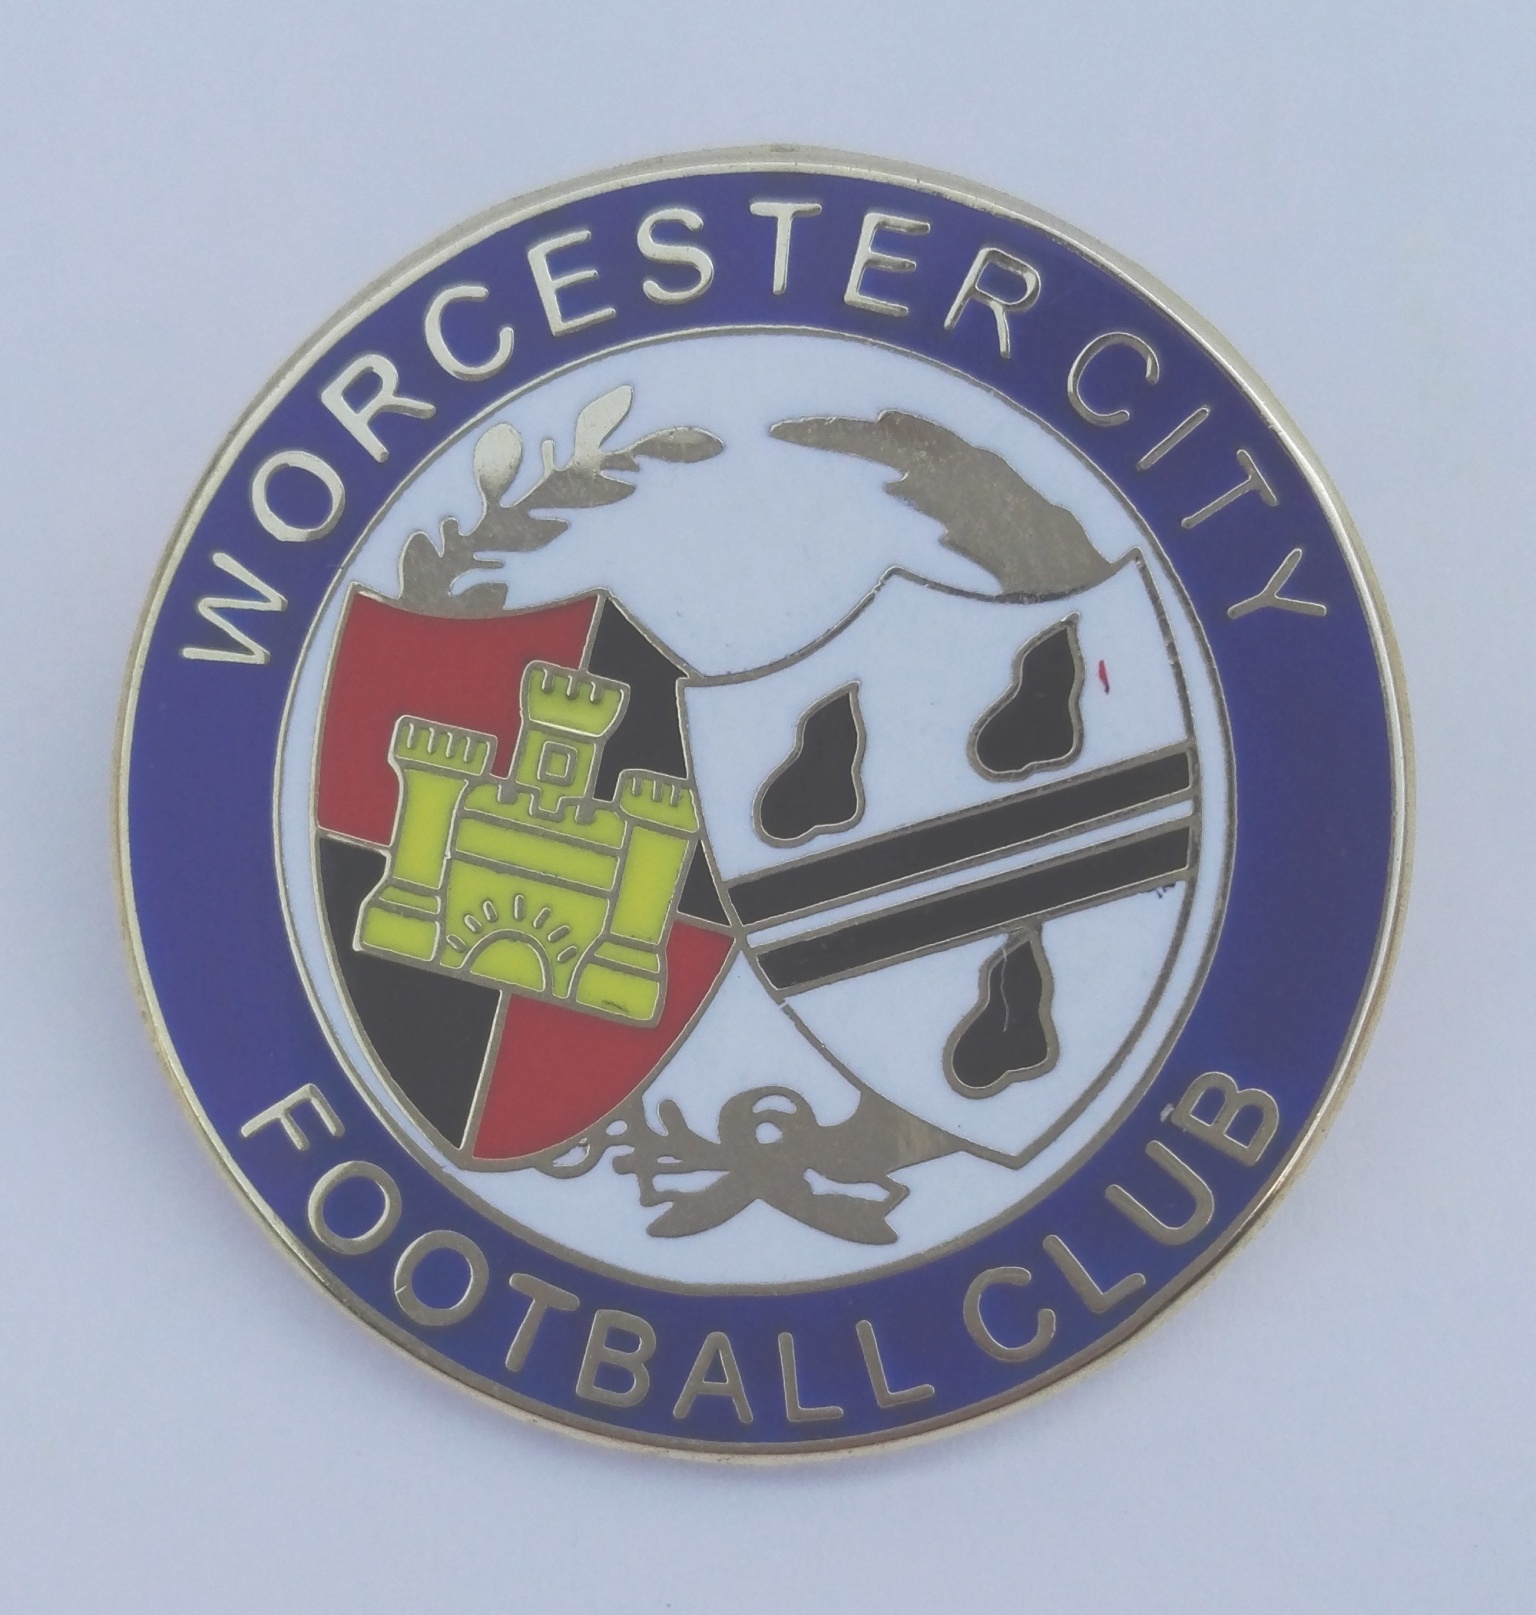 Image: Blue Crest Pin Badge